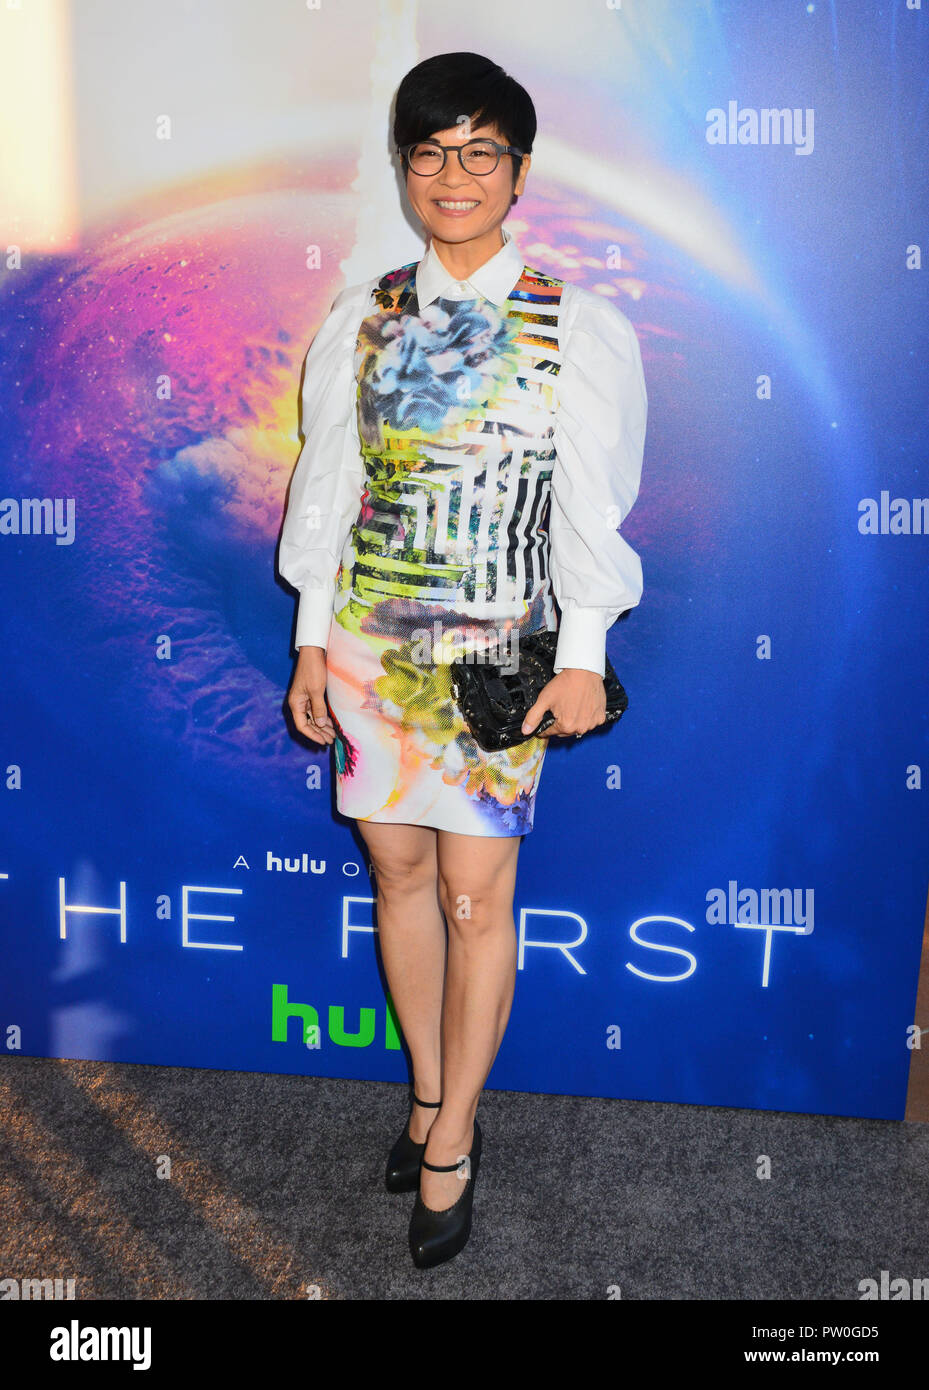 Keiko Agena 015 attends the premiere of Hulu's 'The First' on September 12, 2018 in Los Angeles, California - Stock Image